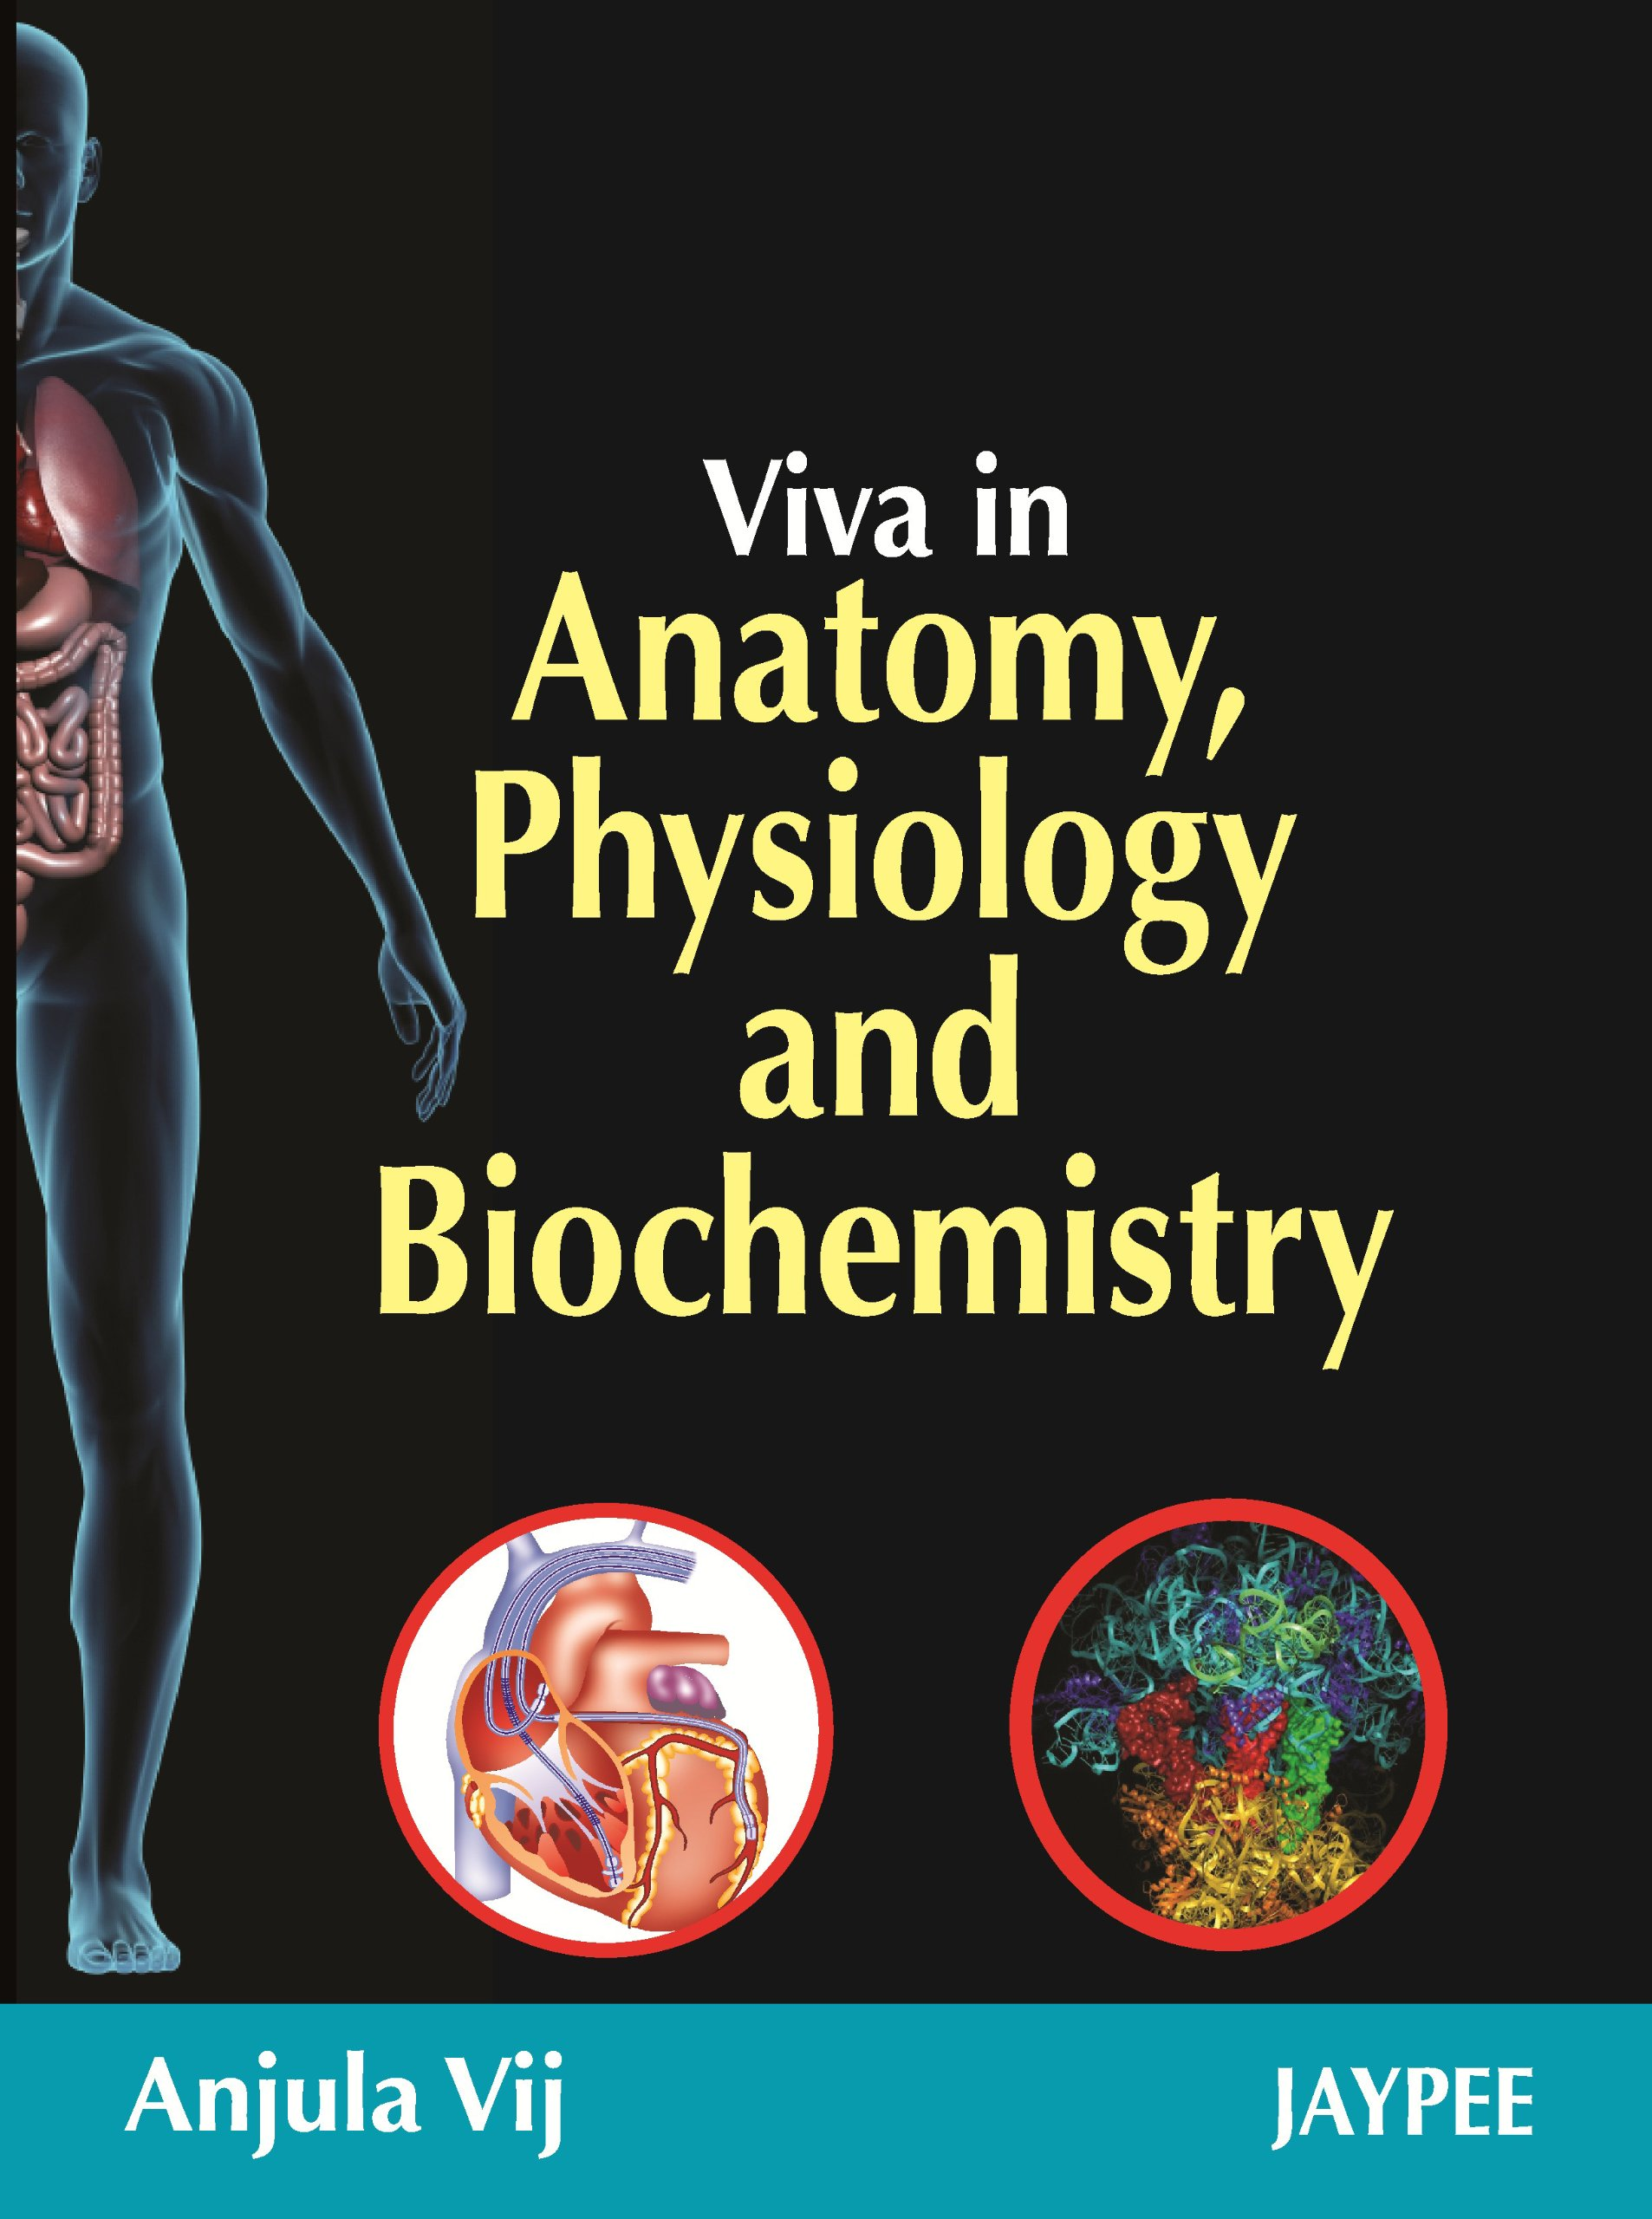 Groß Anatomy And Physiology Ebook Ideen - Menschliche Anatomie ...